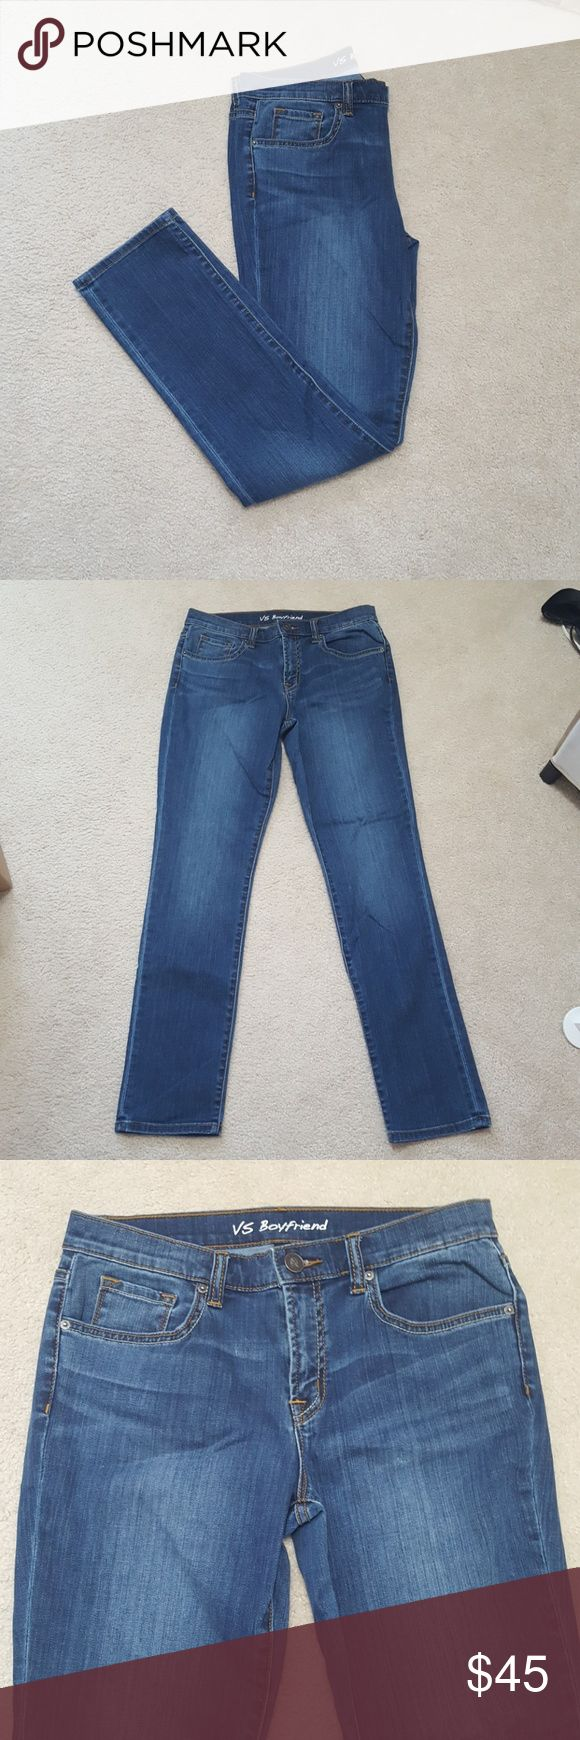 """New Victoria's Secret Boyfriend Skinny Jeans VS Price Reduced! VS Boyfriend jeans in a size 8. This are brand new and never worn but the tags were taken off. I purchased these from Victoria's Secret online catalog when they still made clothing. The inside tag reads """"VS Boyfriend"""" and on the inside pocket lining is has the small VS logo on it. 98% Cotton and 2% Elastane.  Smoke free home and fast shipping. I do offer bundles deals as well. Thank you for checking out my closet. Victoria's…"""